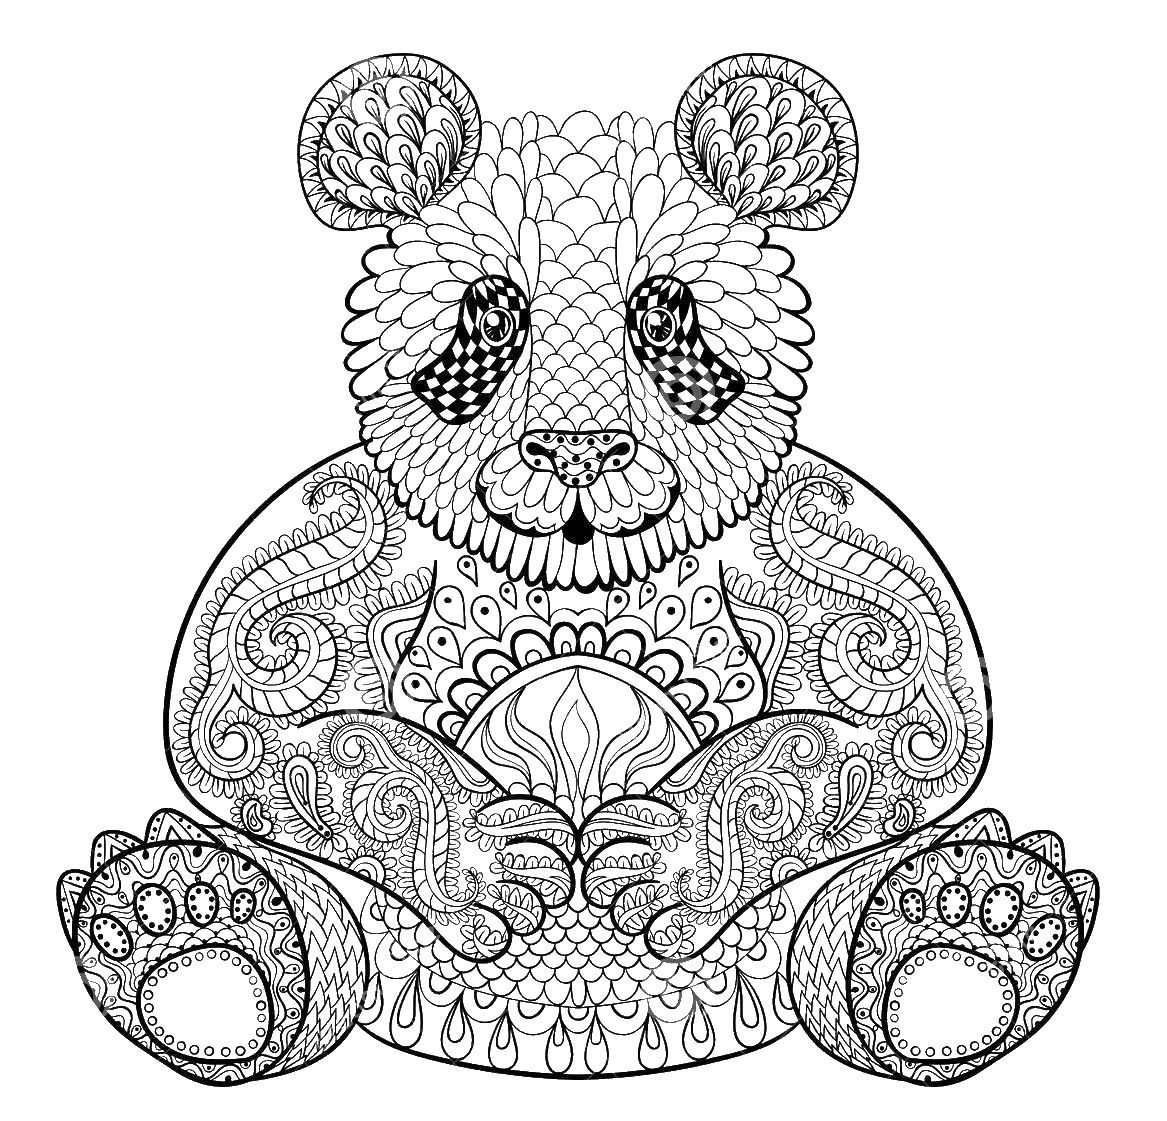 panda coloring book pages - adult coloring pages panda adult coloring pages and